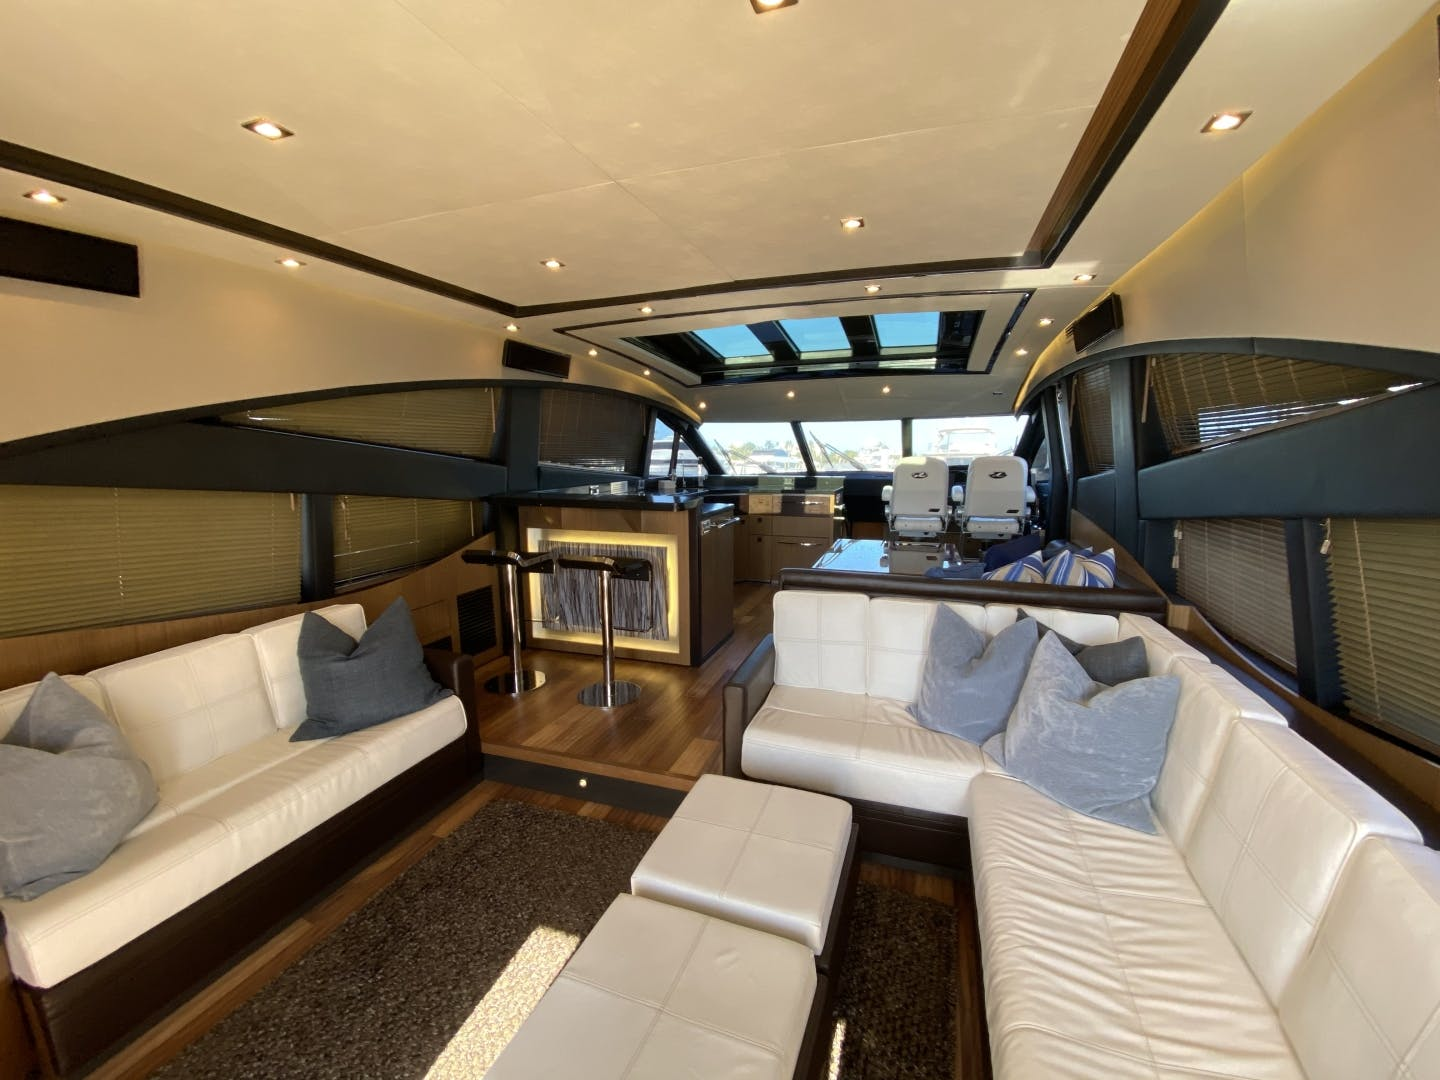 2016 Sea Ray 65' L650 Express Cozy | Picture 6 of 90